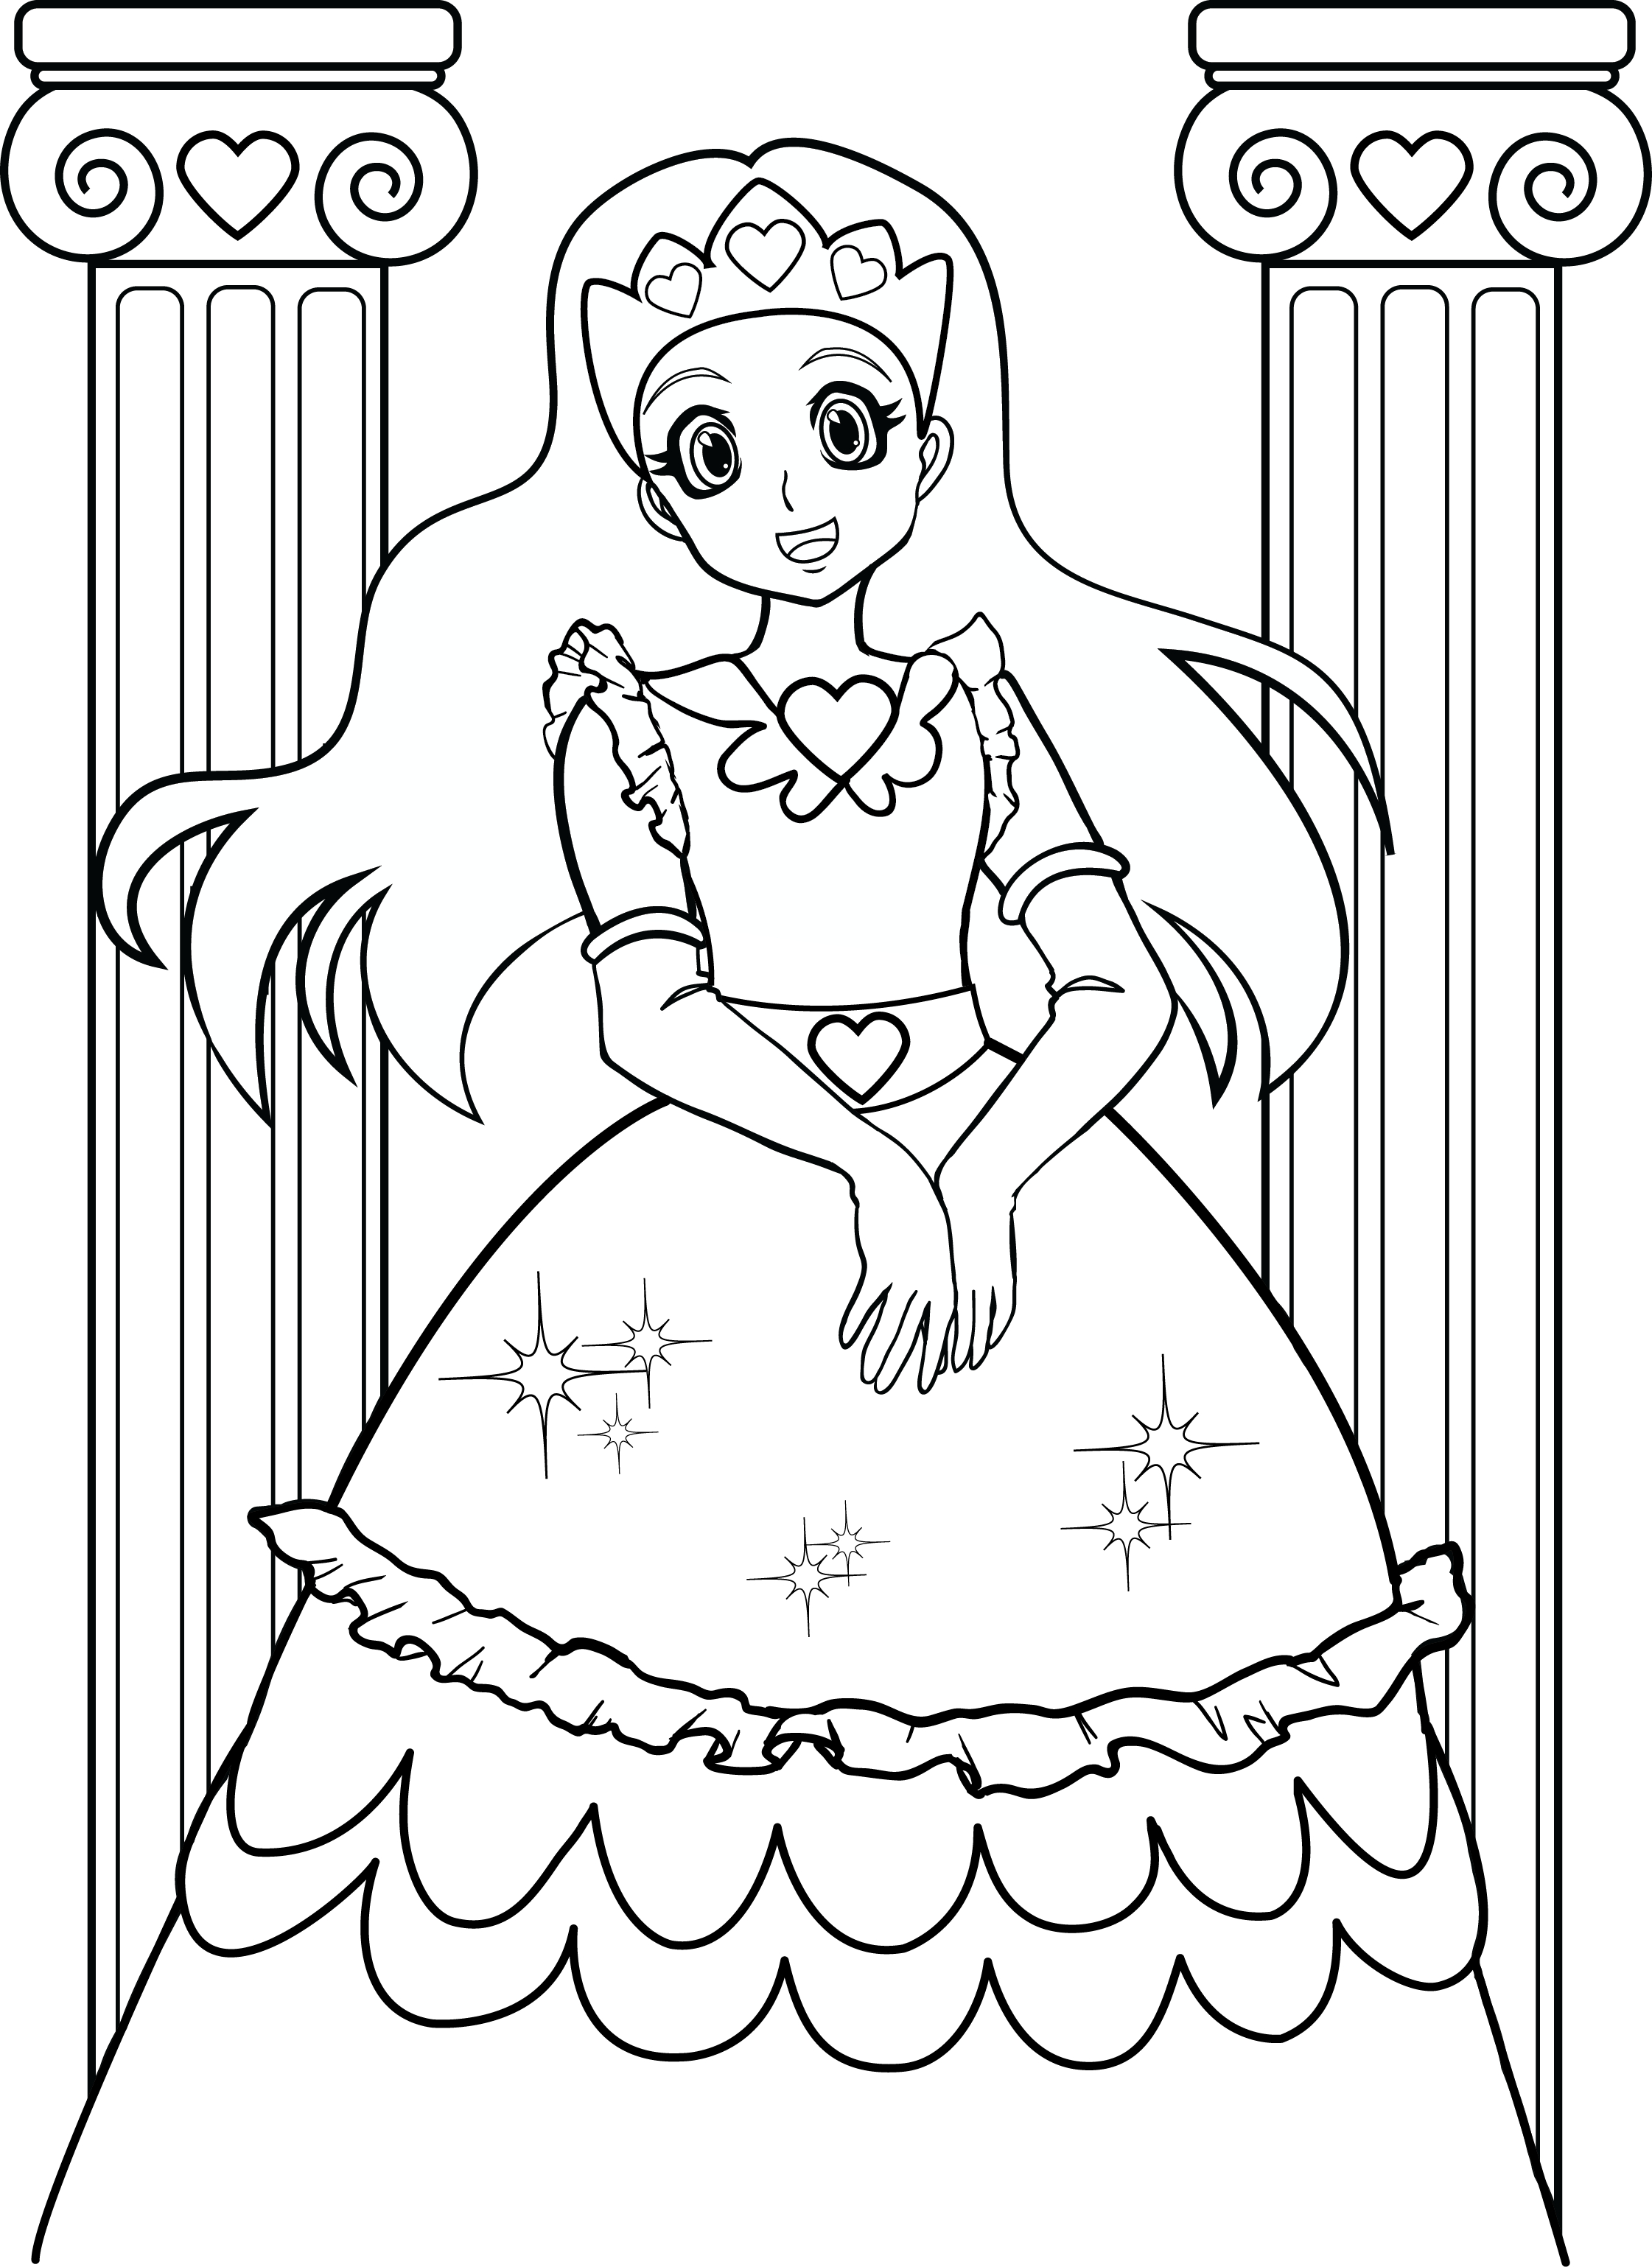 Winning Coloring Pages Line for Girls Coloring to Funny Girls Gallery Of Engaging Line Coloring Pages for Kids 19 Children Elegant Paper to Print